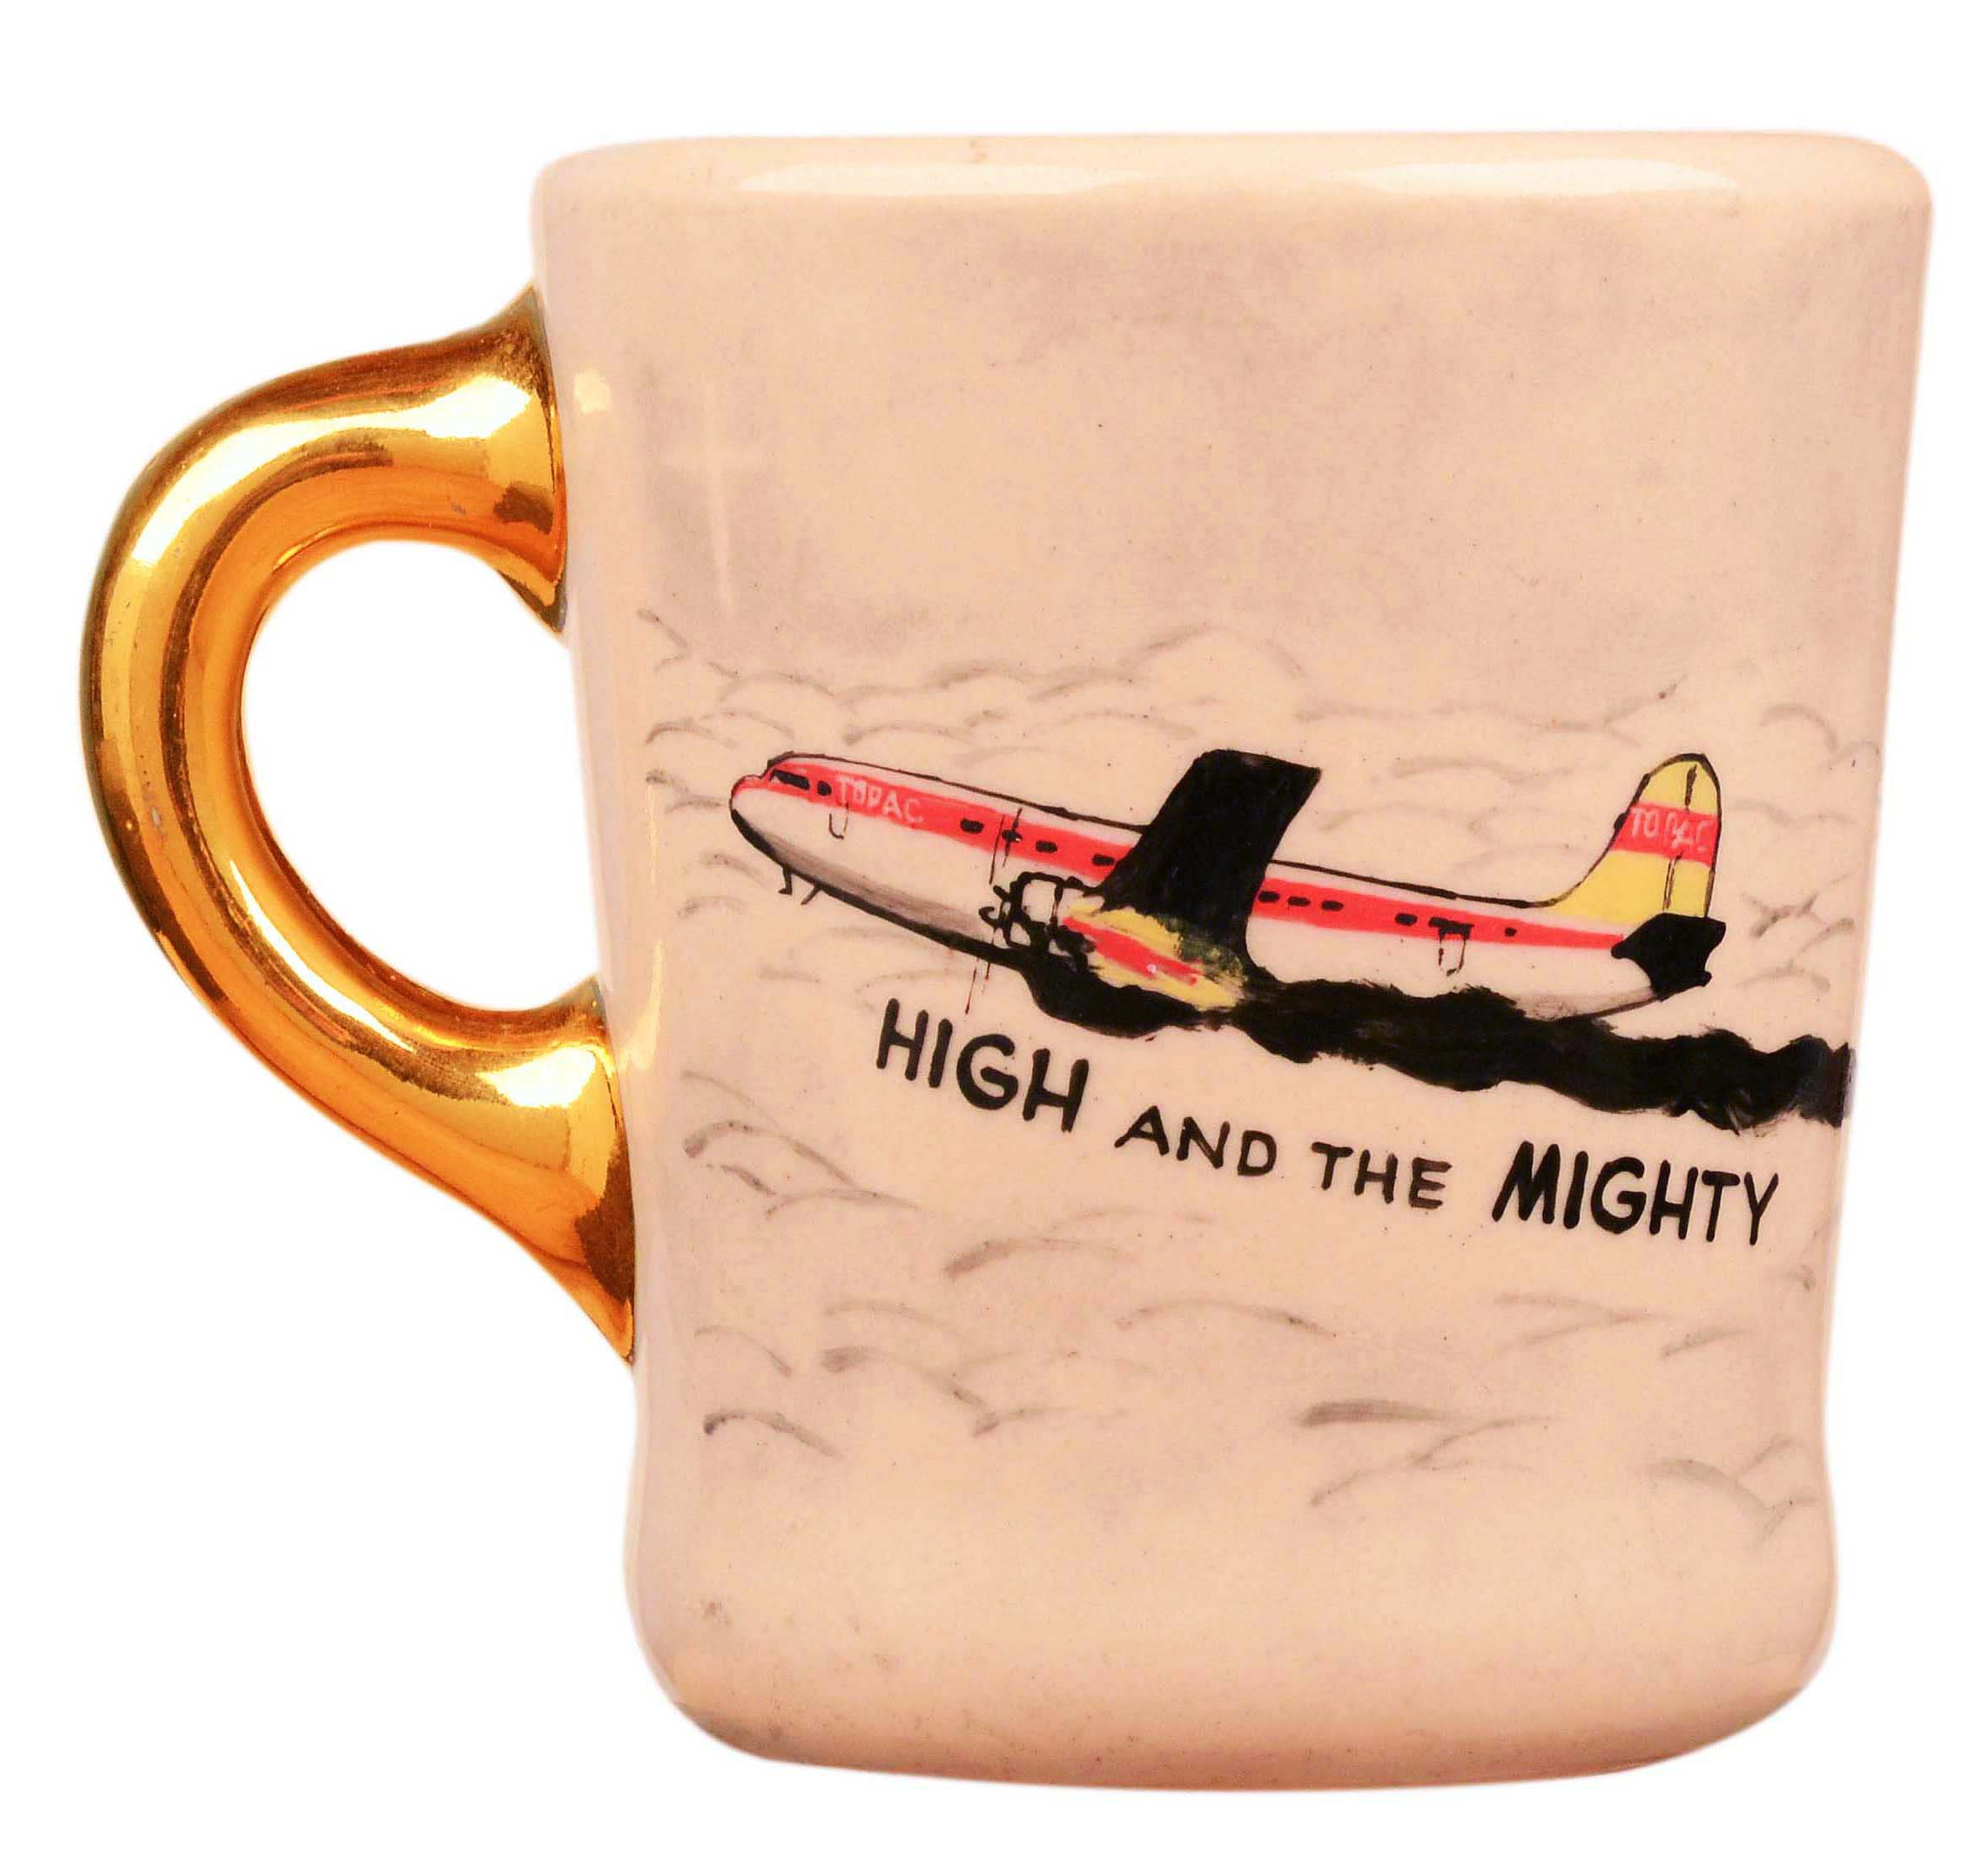 John Wayne mug for the 1954 movie The High and Mighty, front.